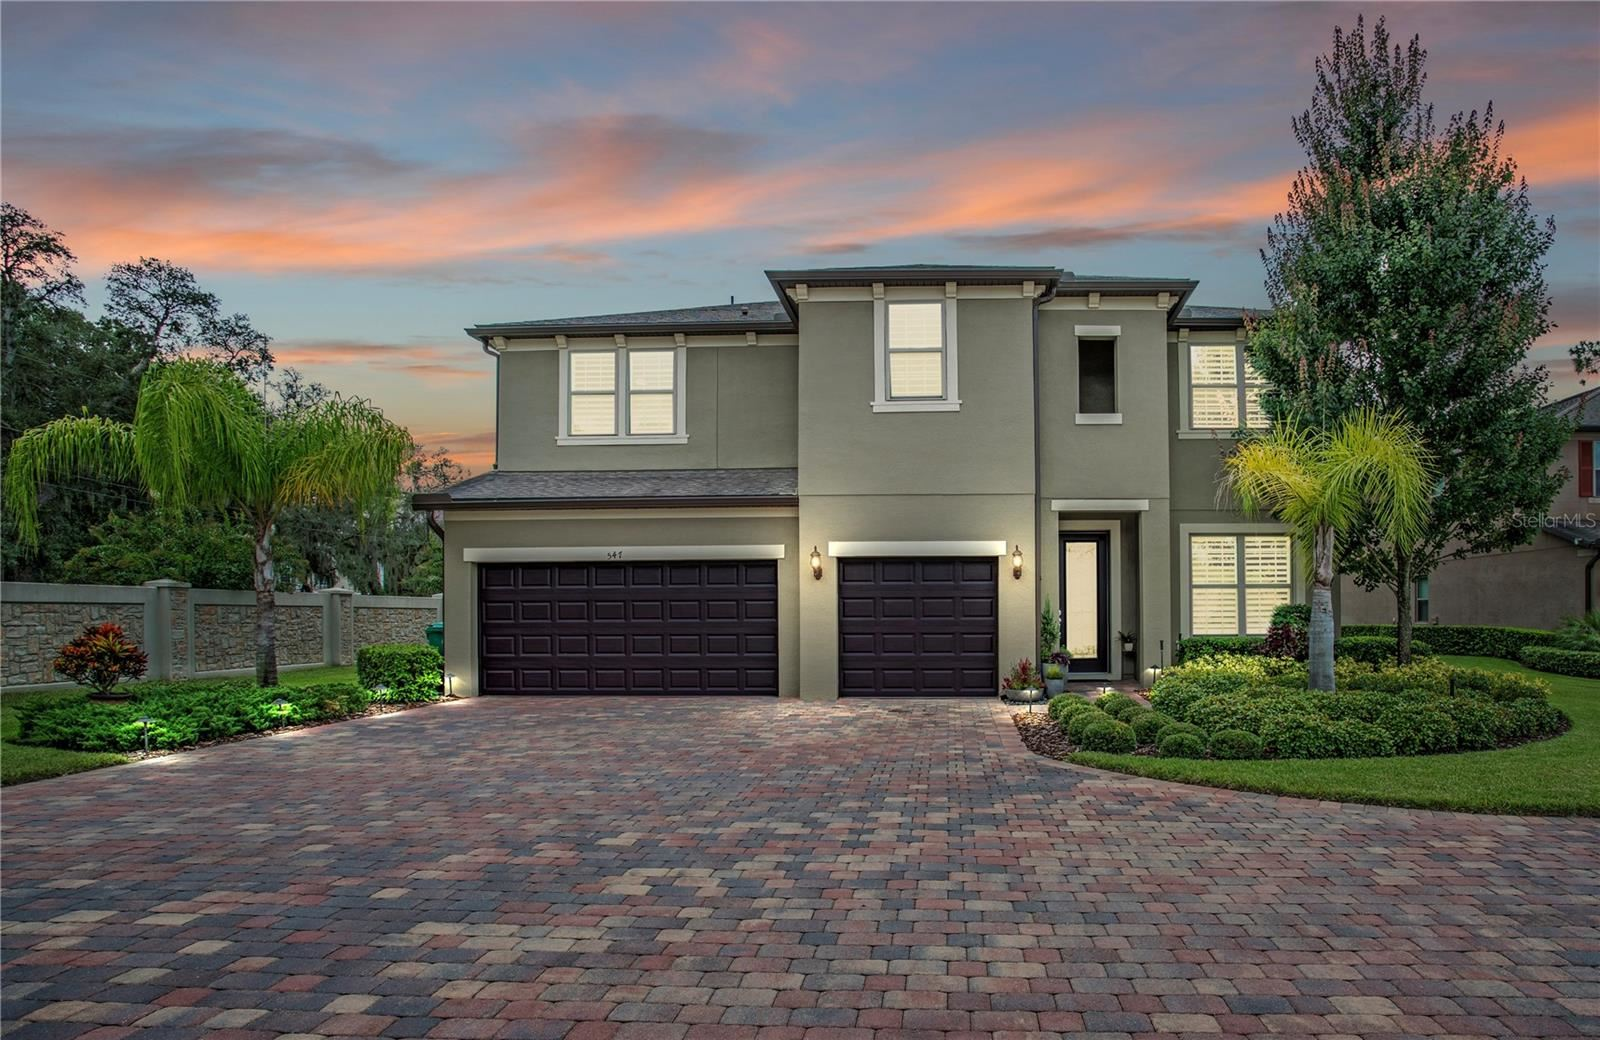 547 CRYSTAL RESERVE COURT, Lake Mary, FL 32746 - #: O5971113